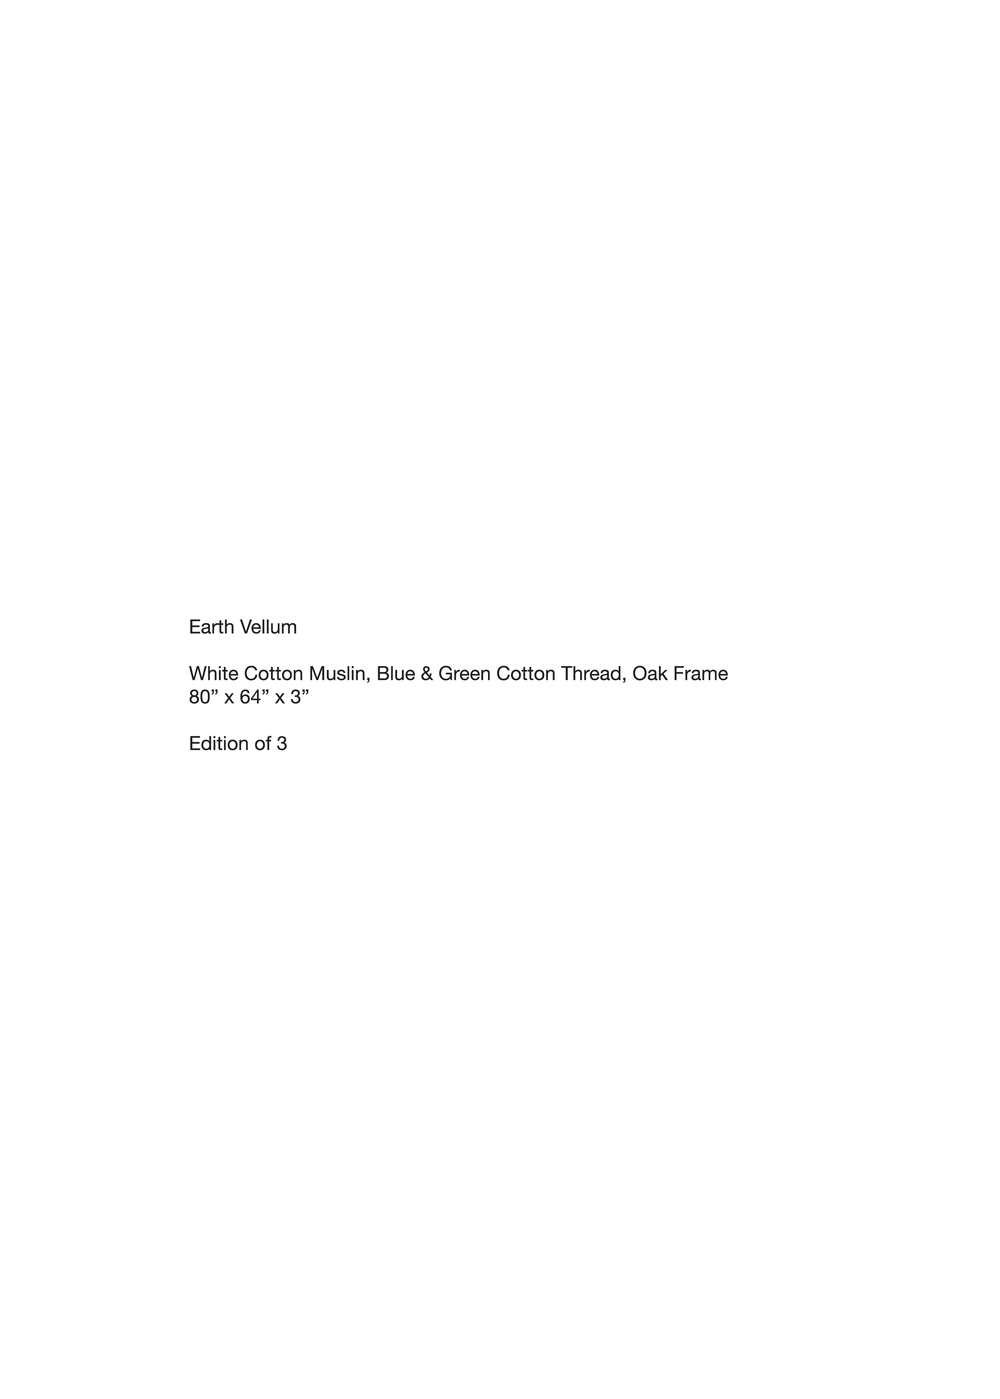 Nicole Patel Earth Vellum Text-01.png